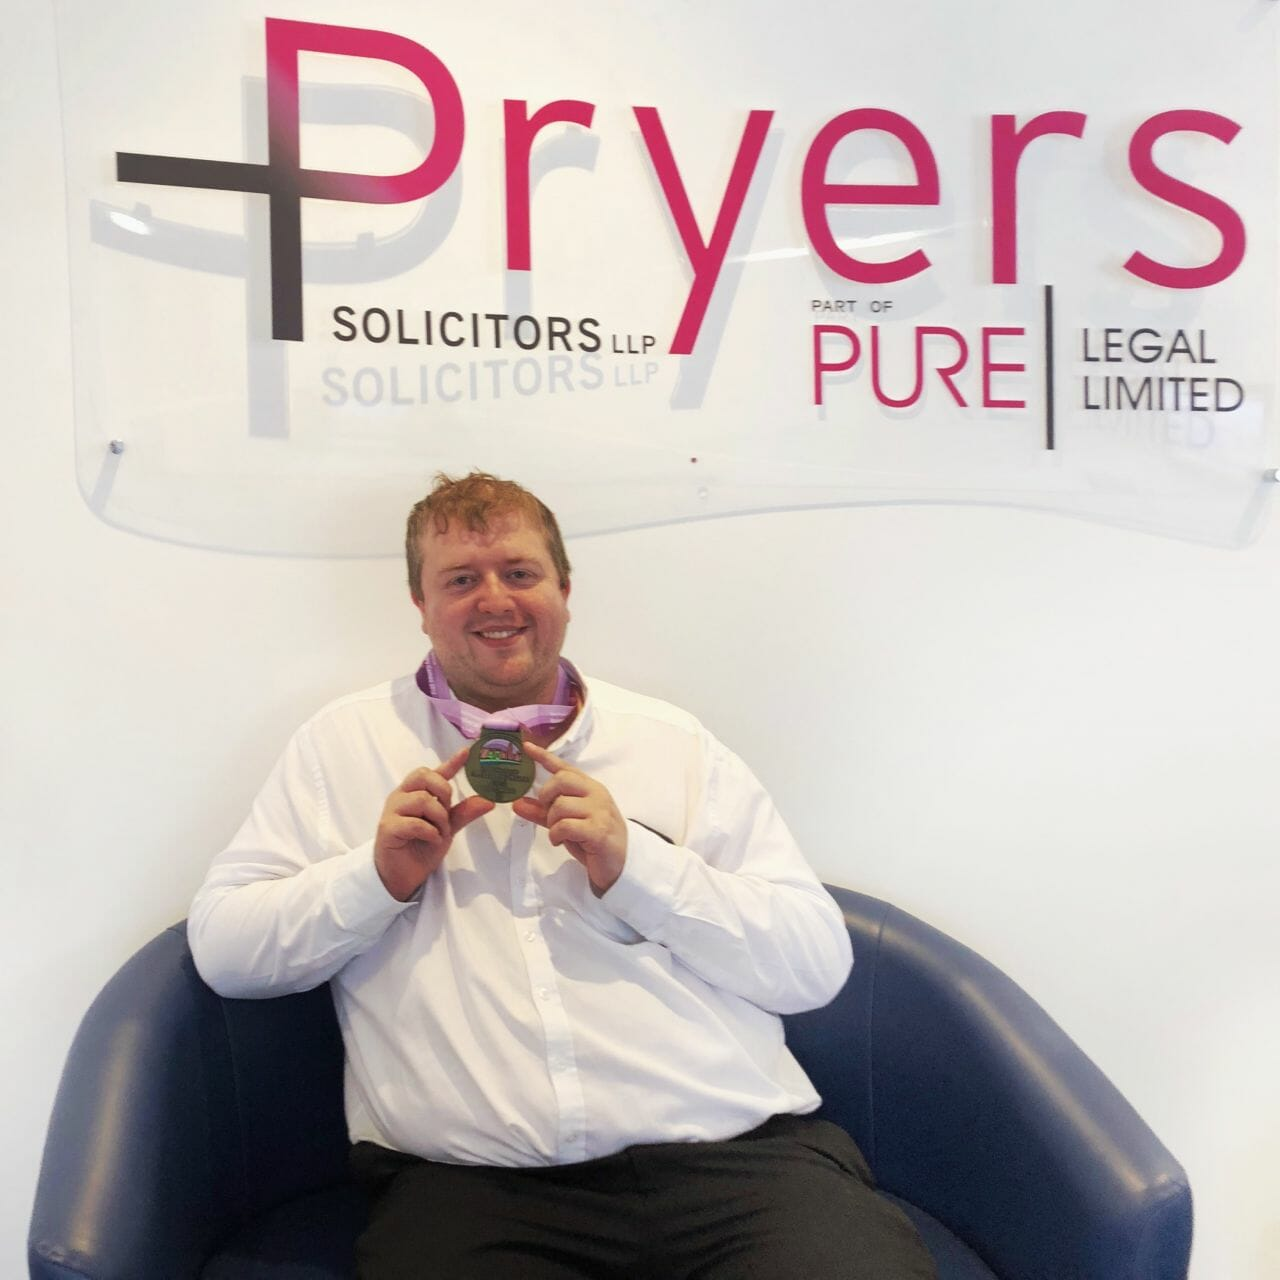 Mark Mason, Pryers' Olympic hero, with his gold medal from the Special Olympics -